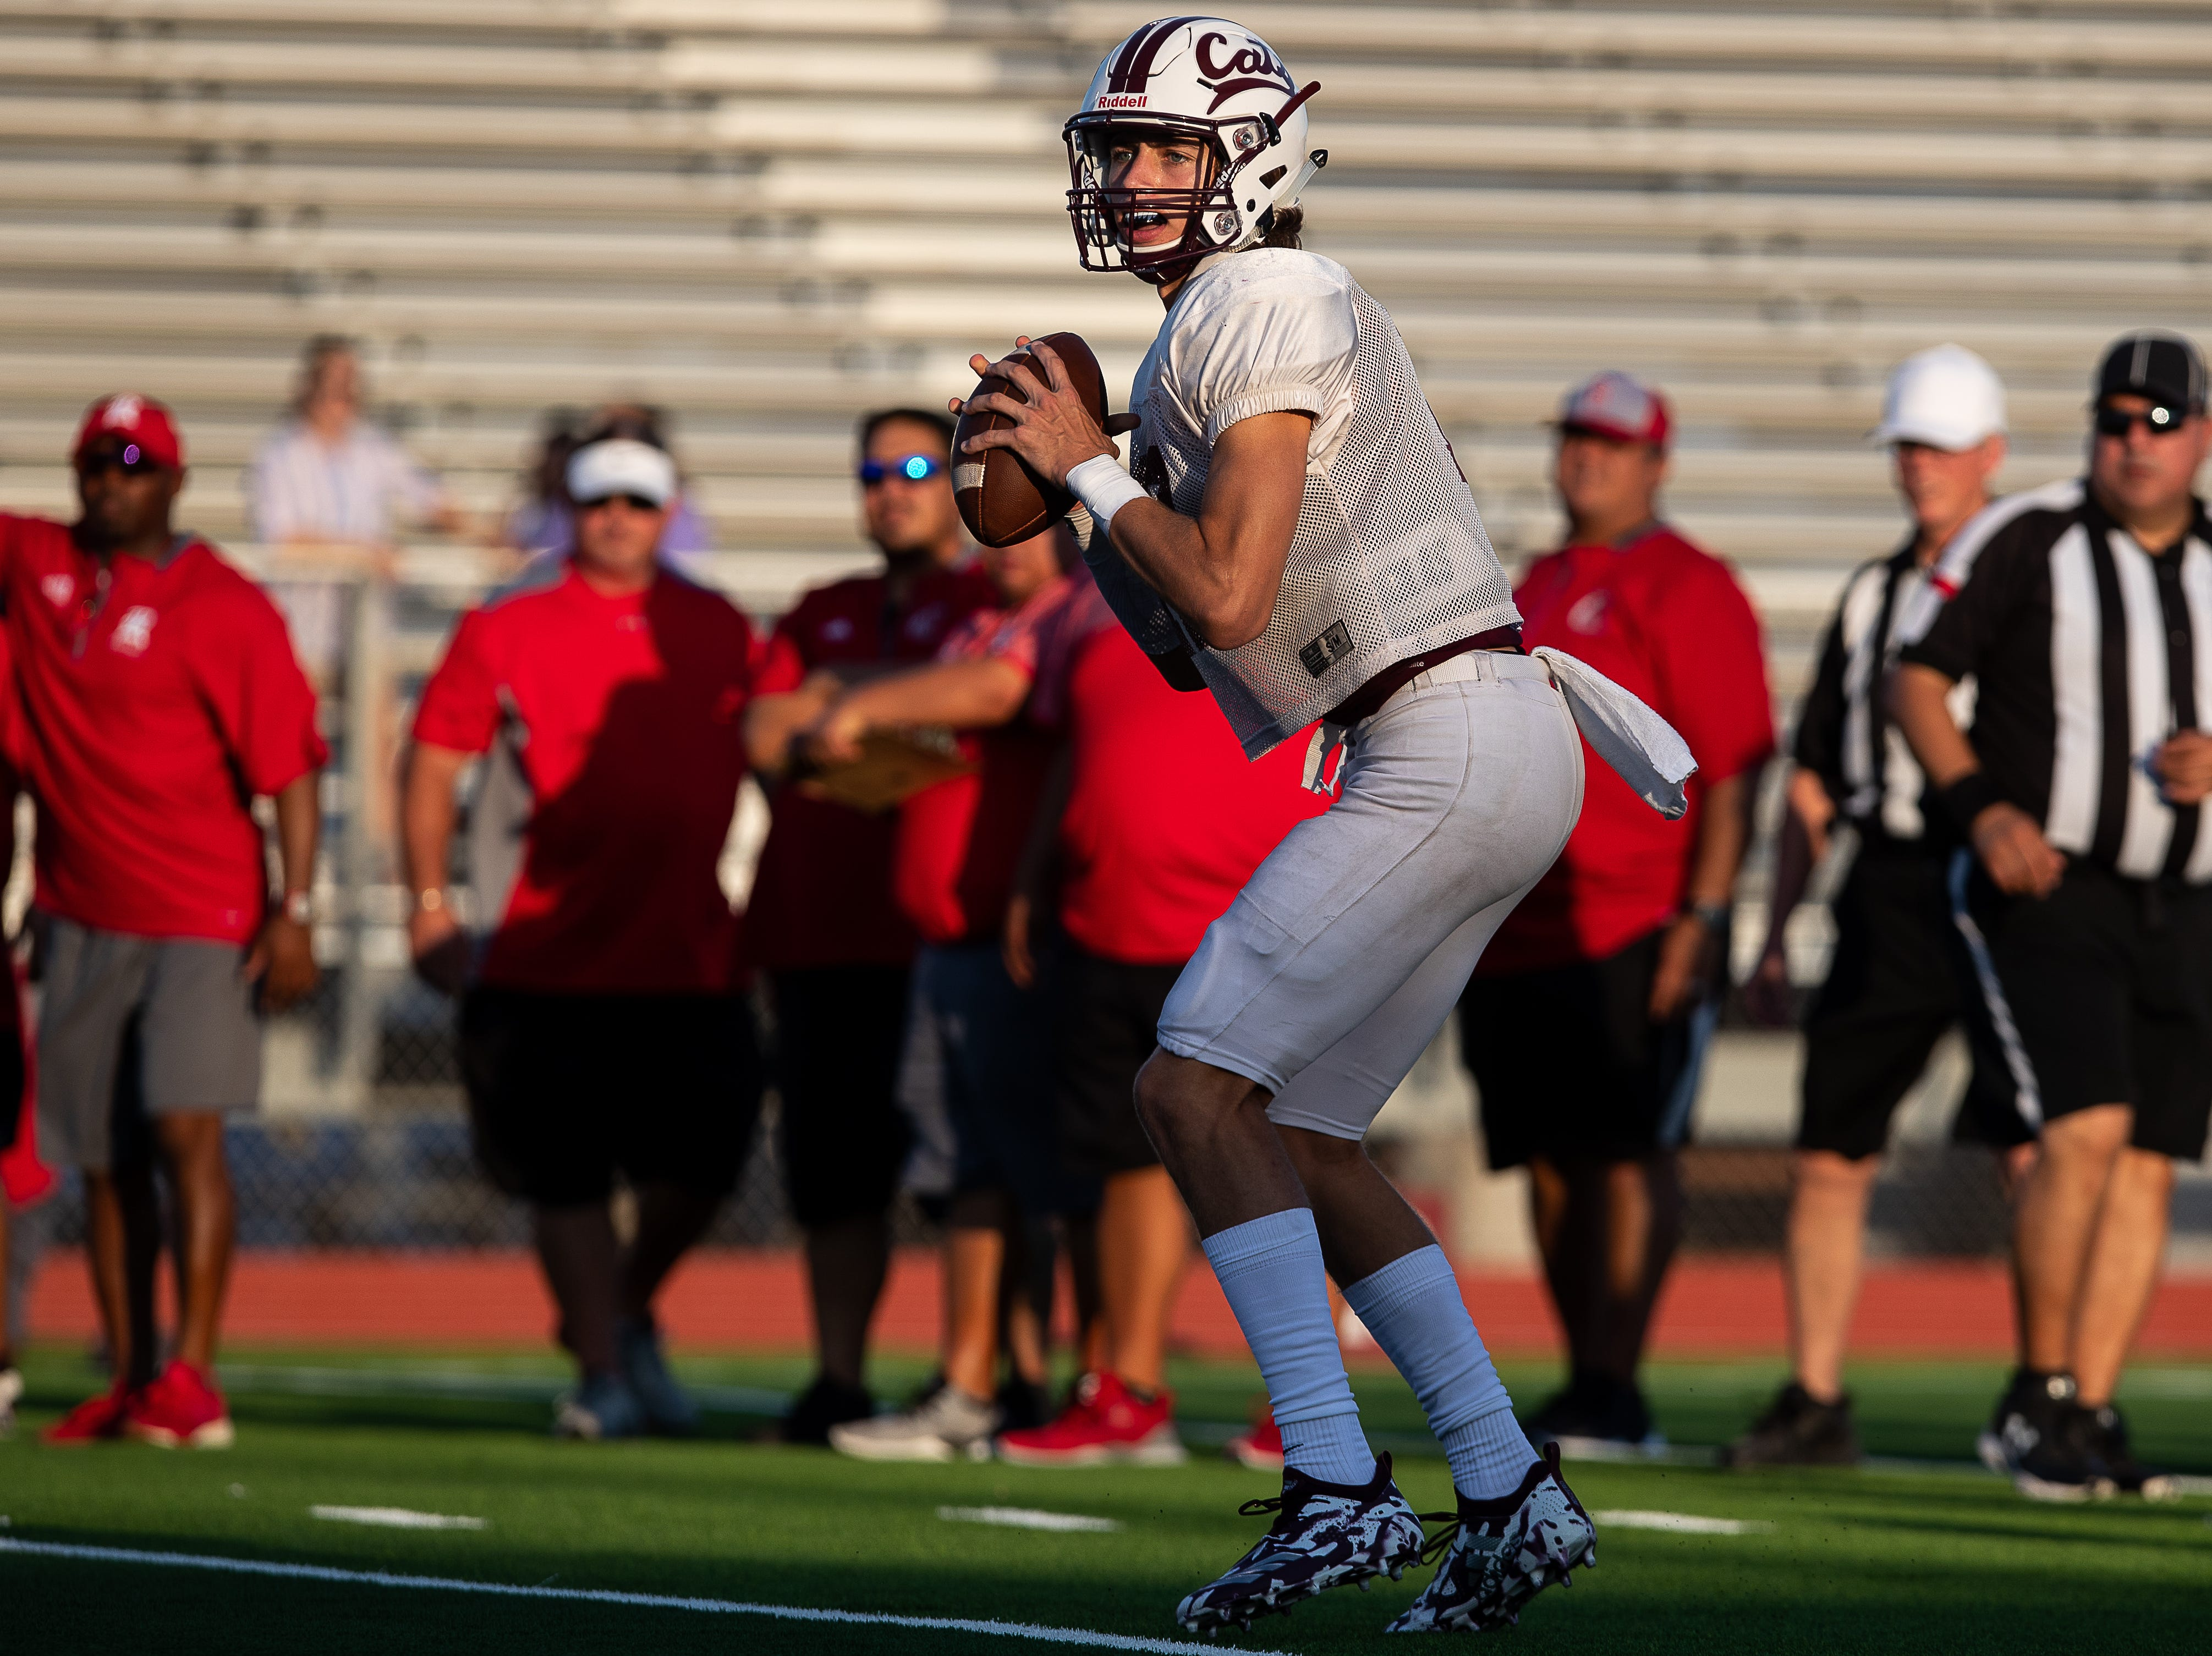 Calallen scrimmage against Ray at Wildcat Stadium on Friday, Aug, 24, 2018.